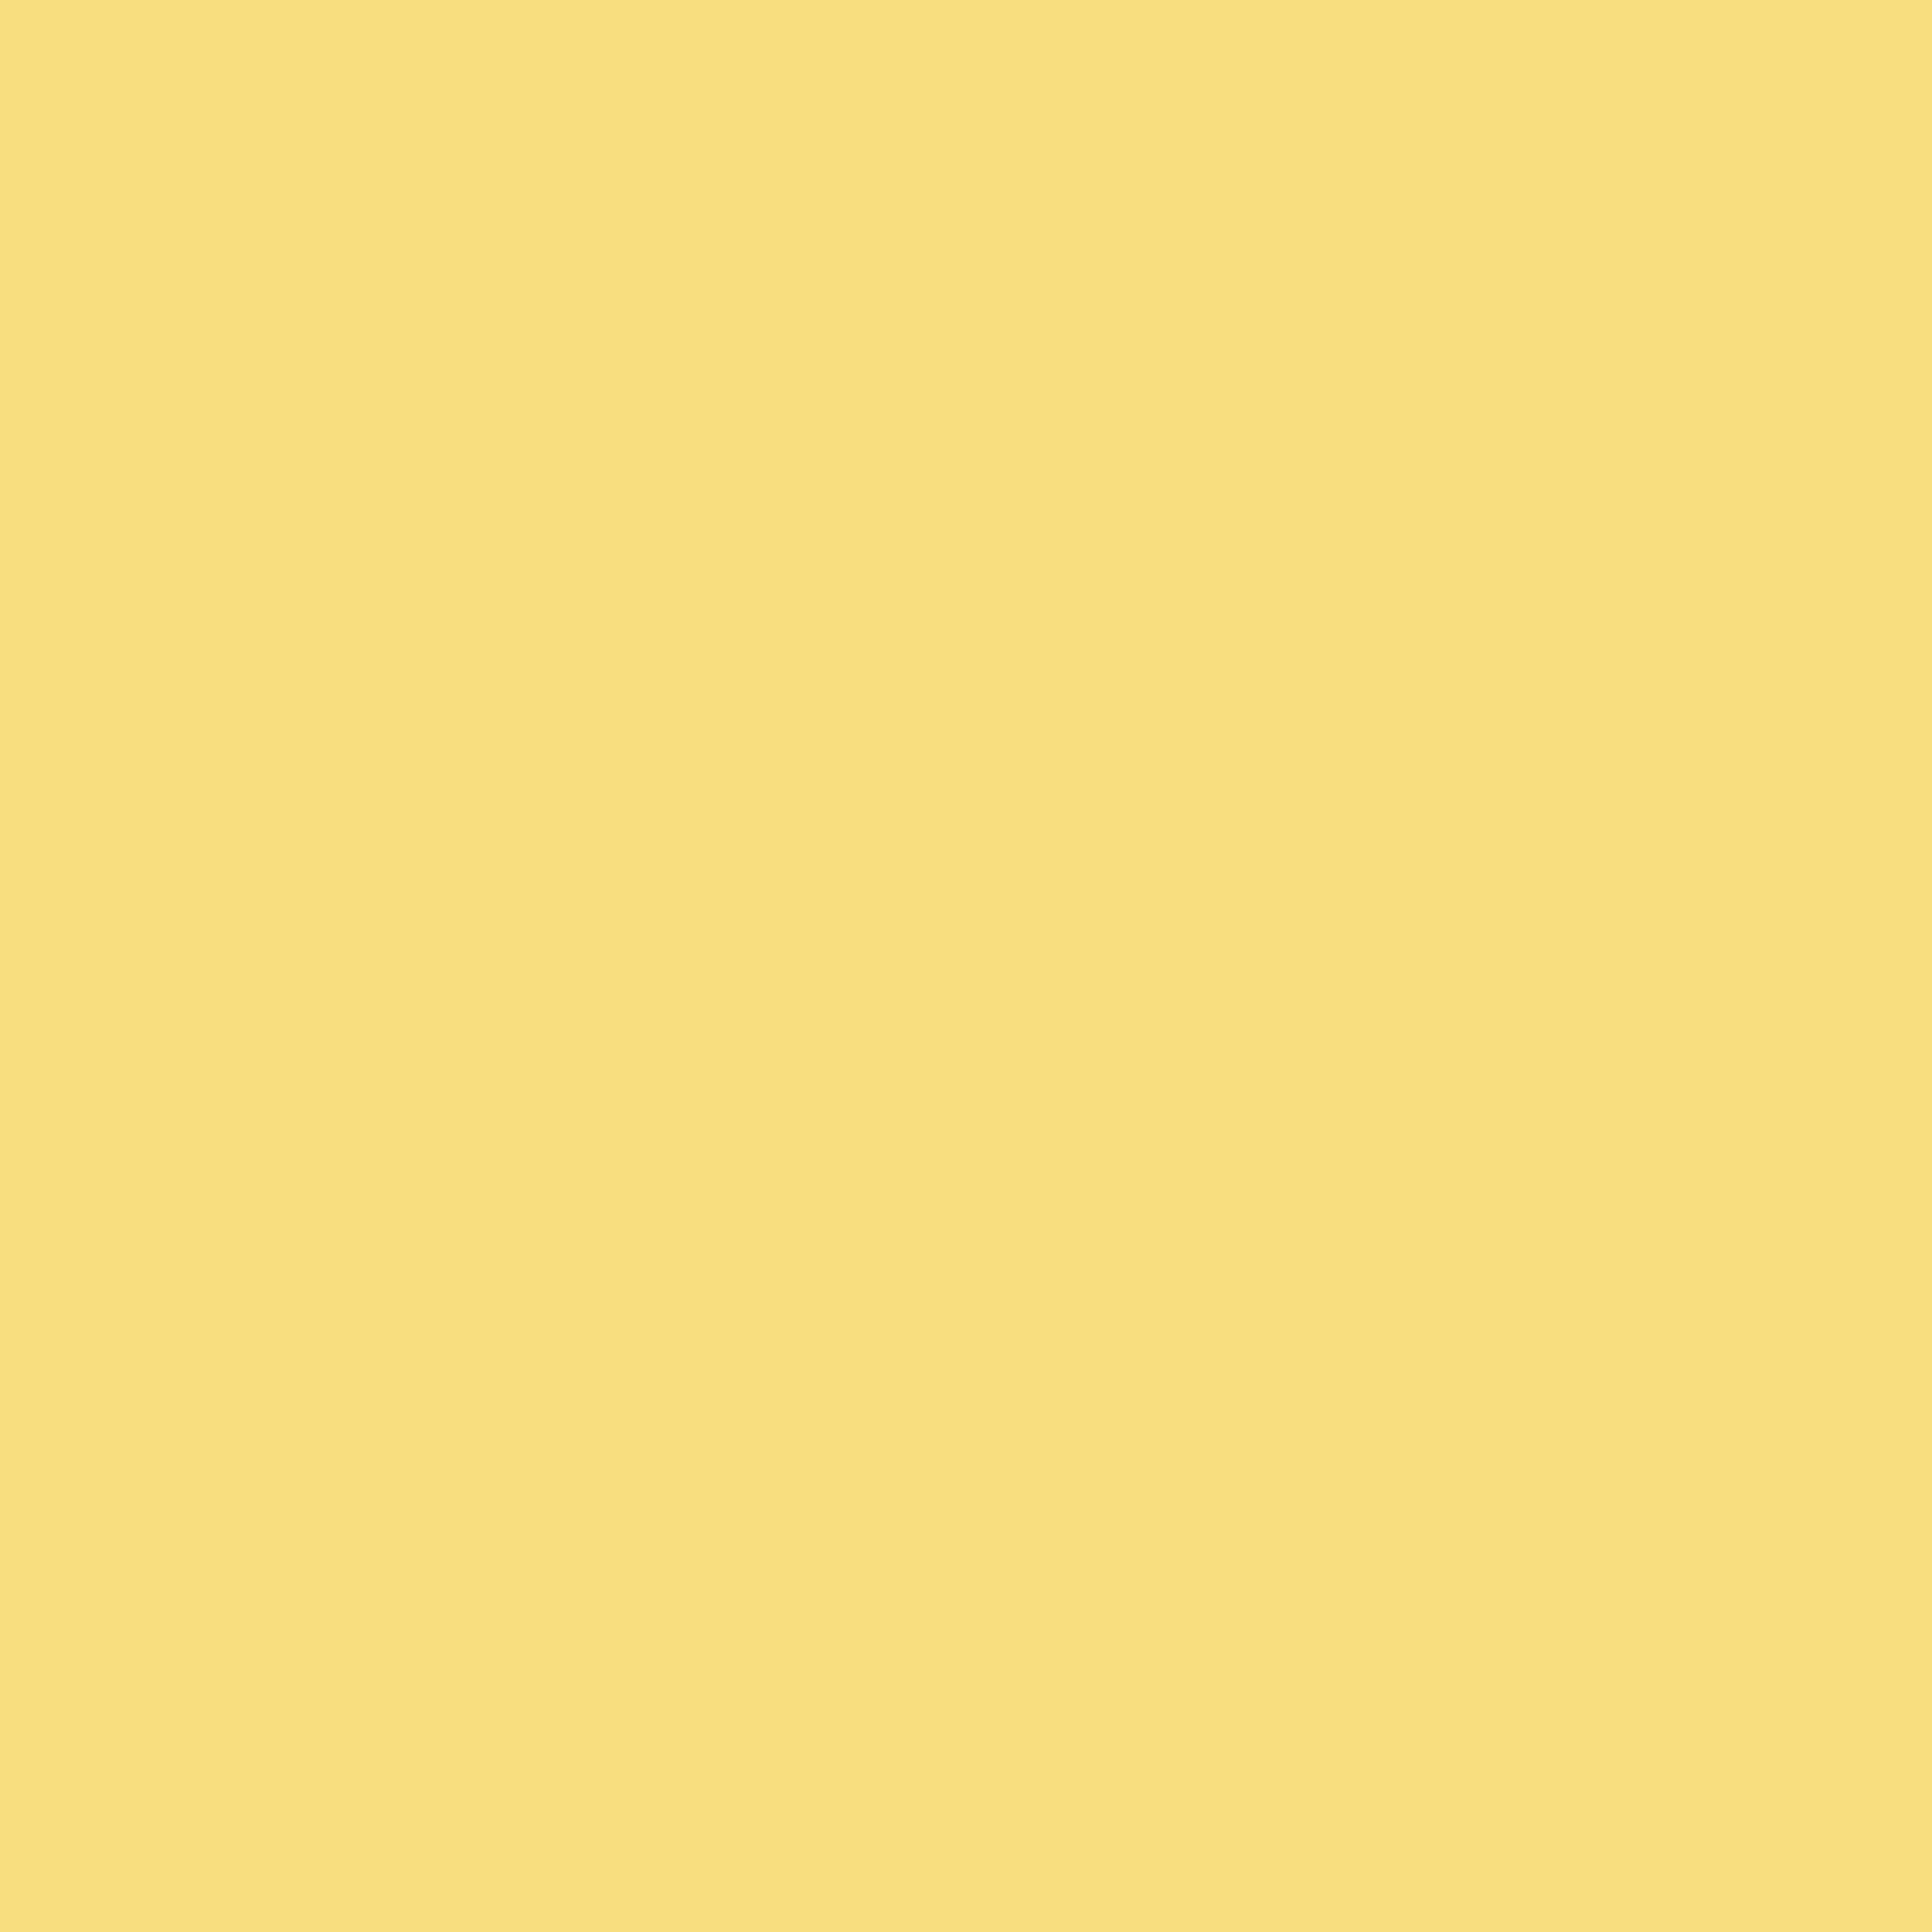 3600x3600 Mellow Yellow Solid Color Background